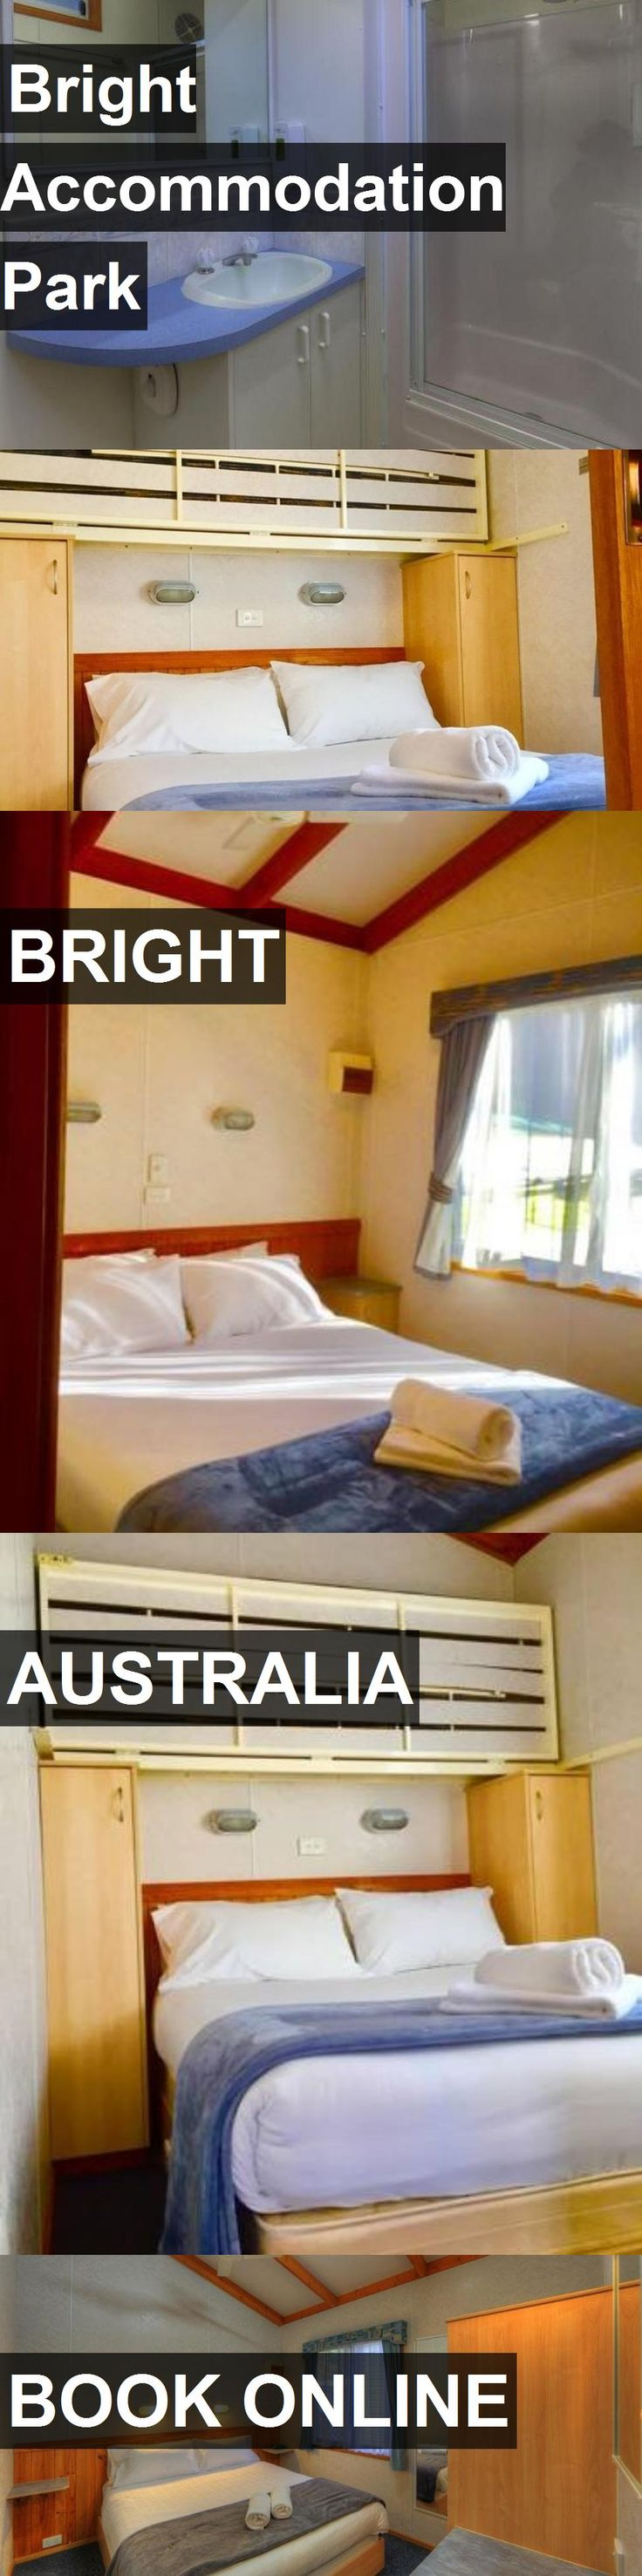 Hotel Bright Accommodation Park in Bright, Australia. For more information, photos, reviews and best prices please follow the link. #Australia #Bright #travel #vacation #hotel